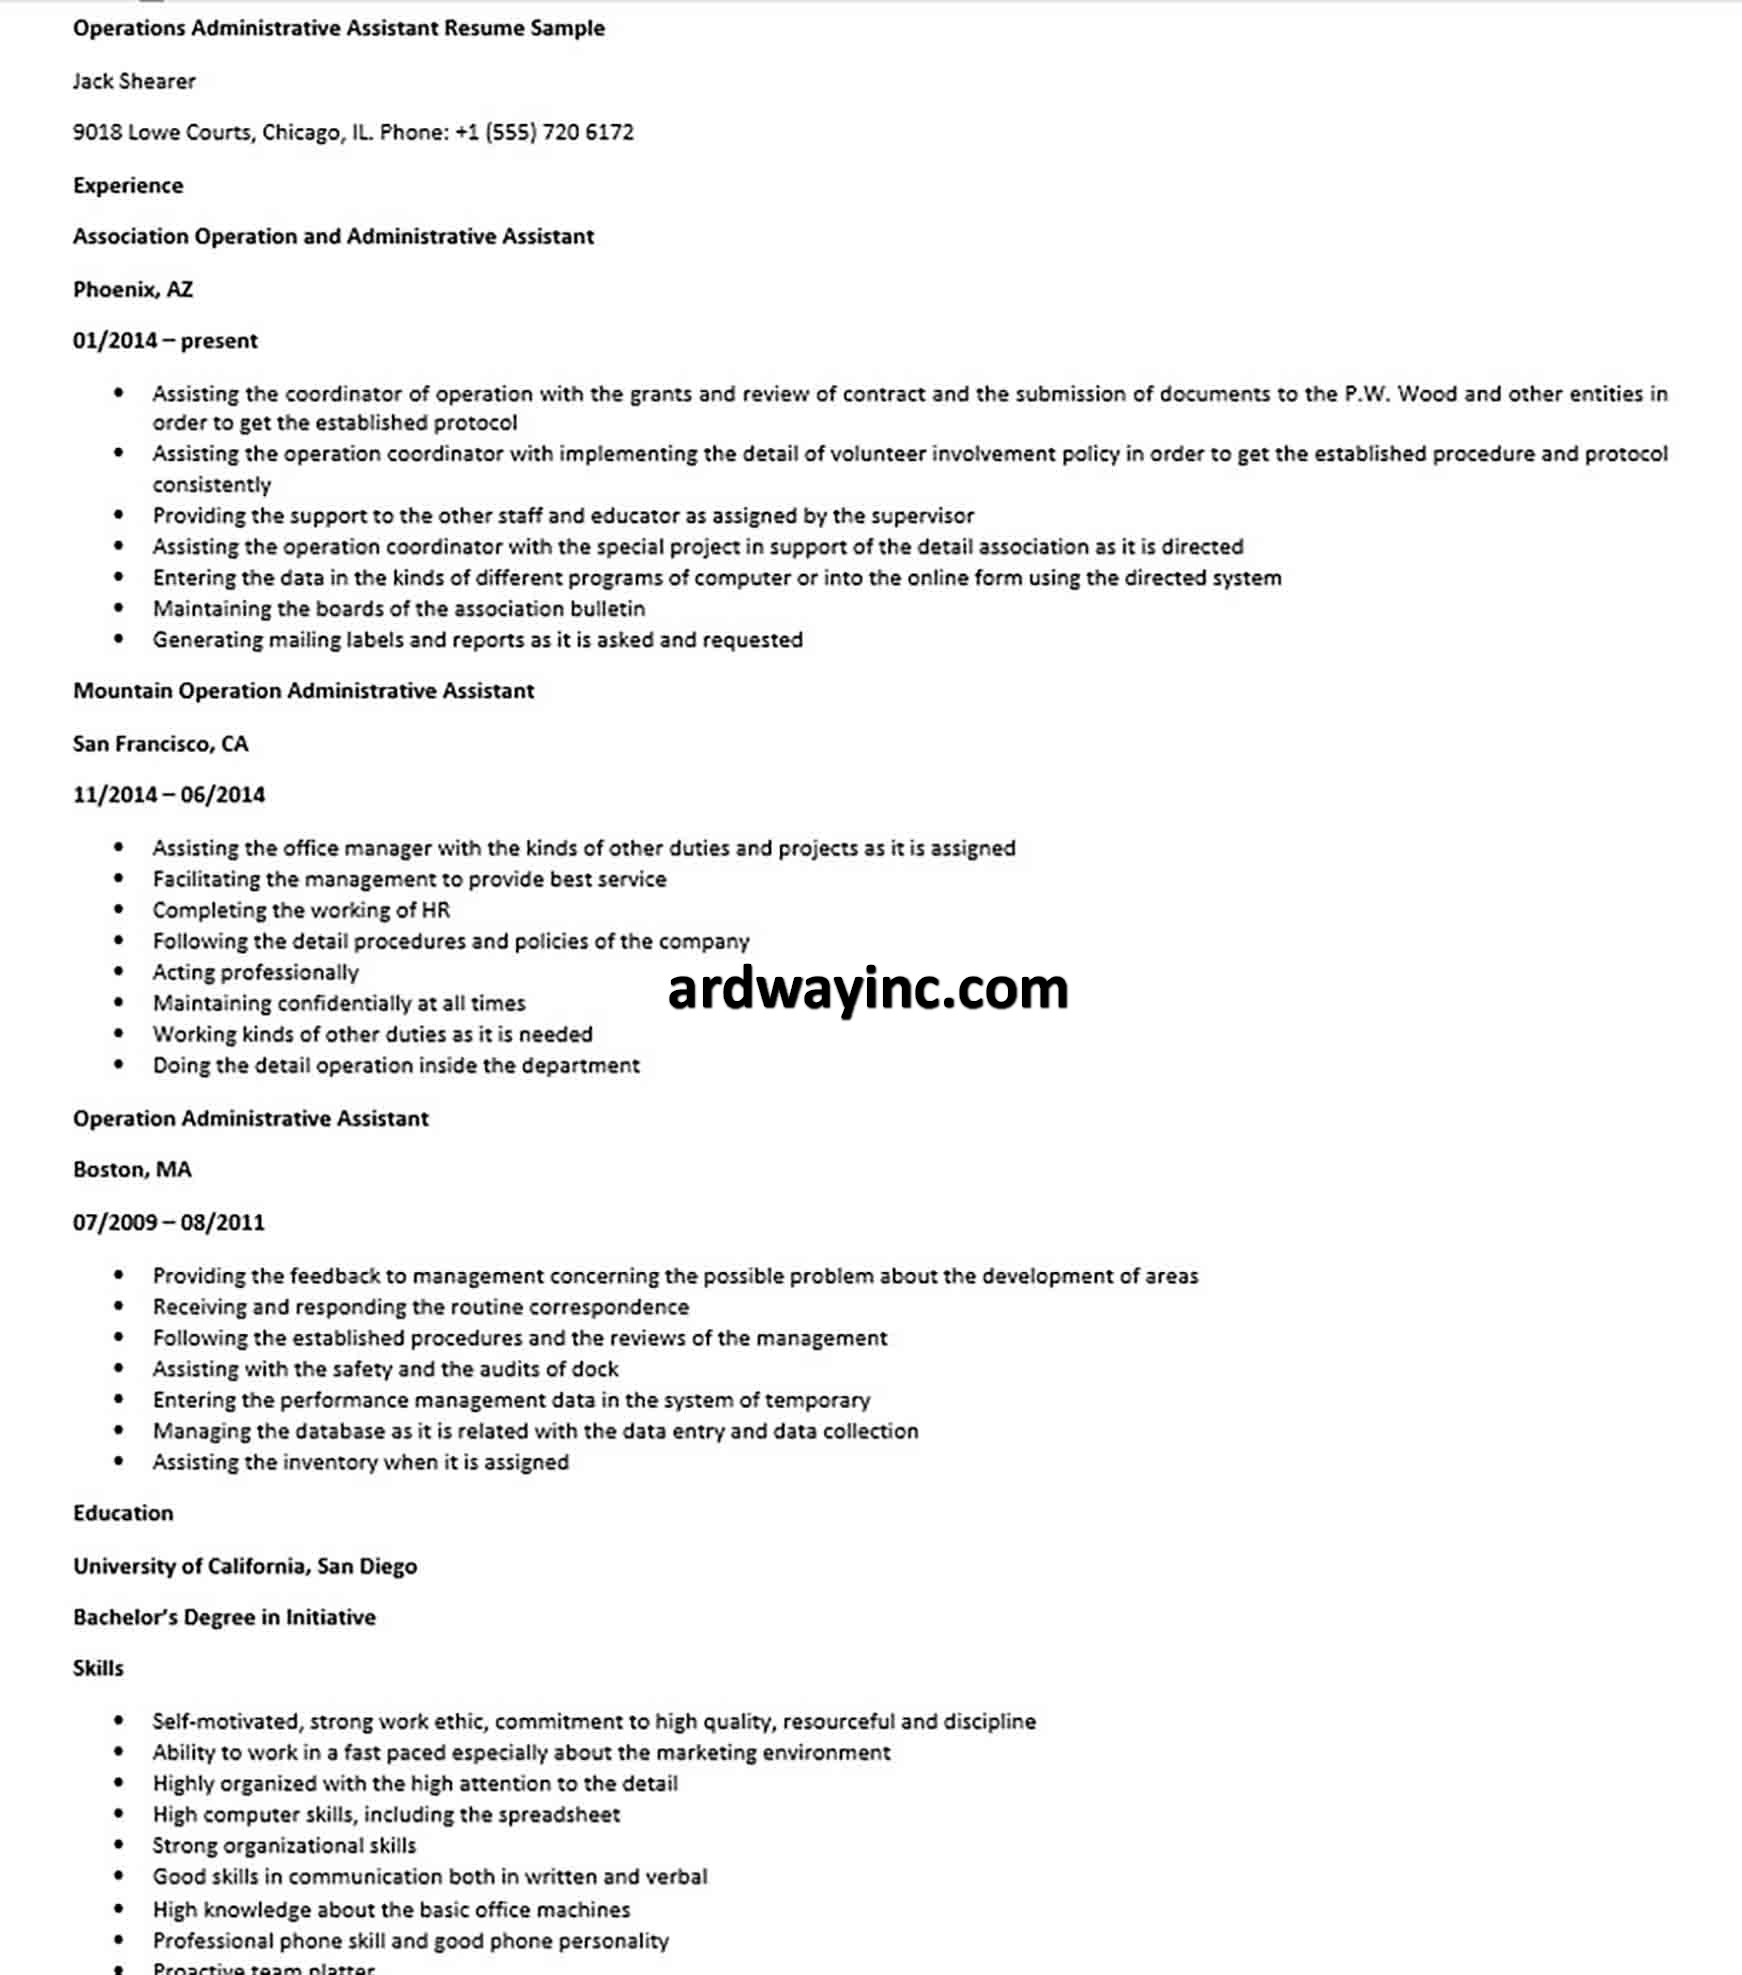 Operations Administrative Assistant Resume Sample